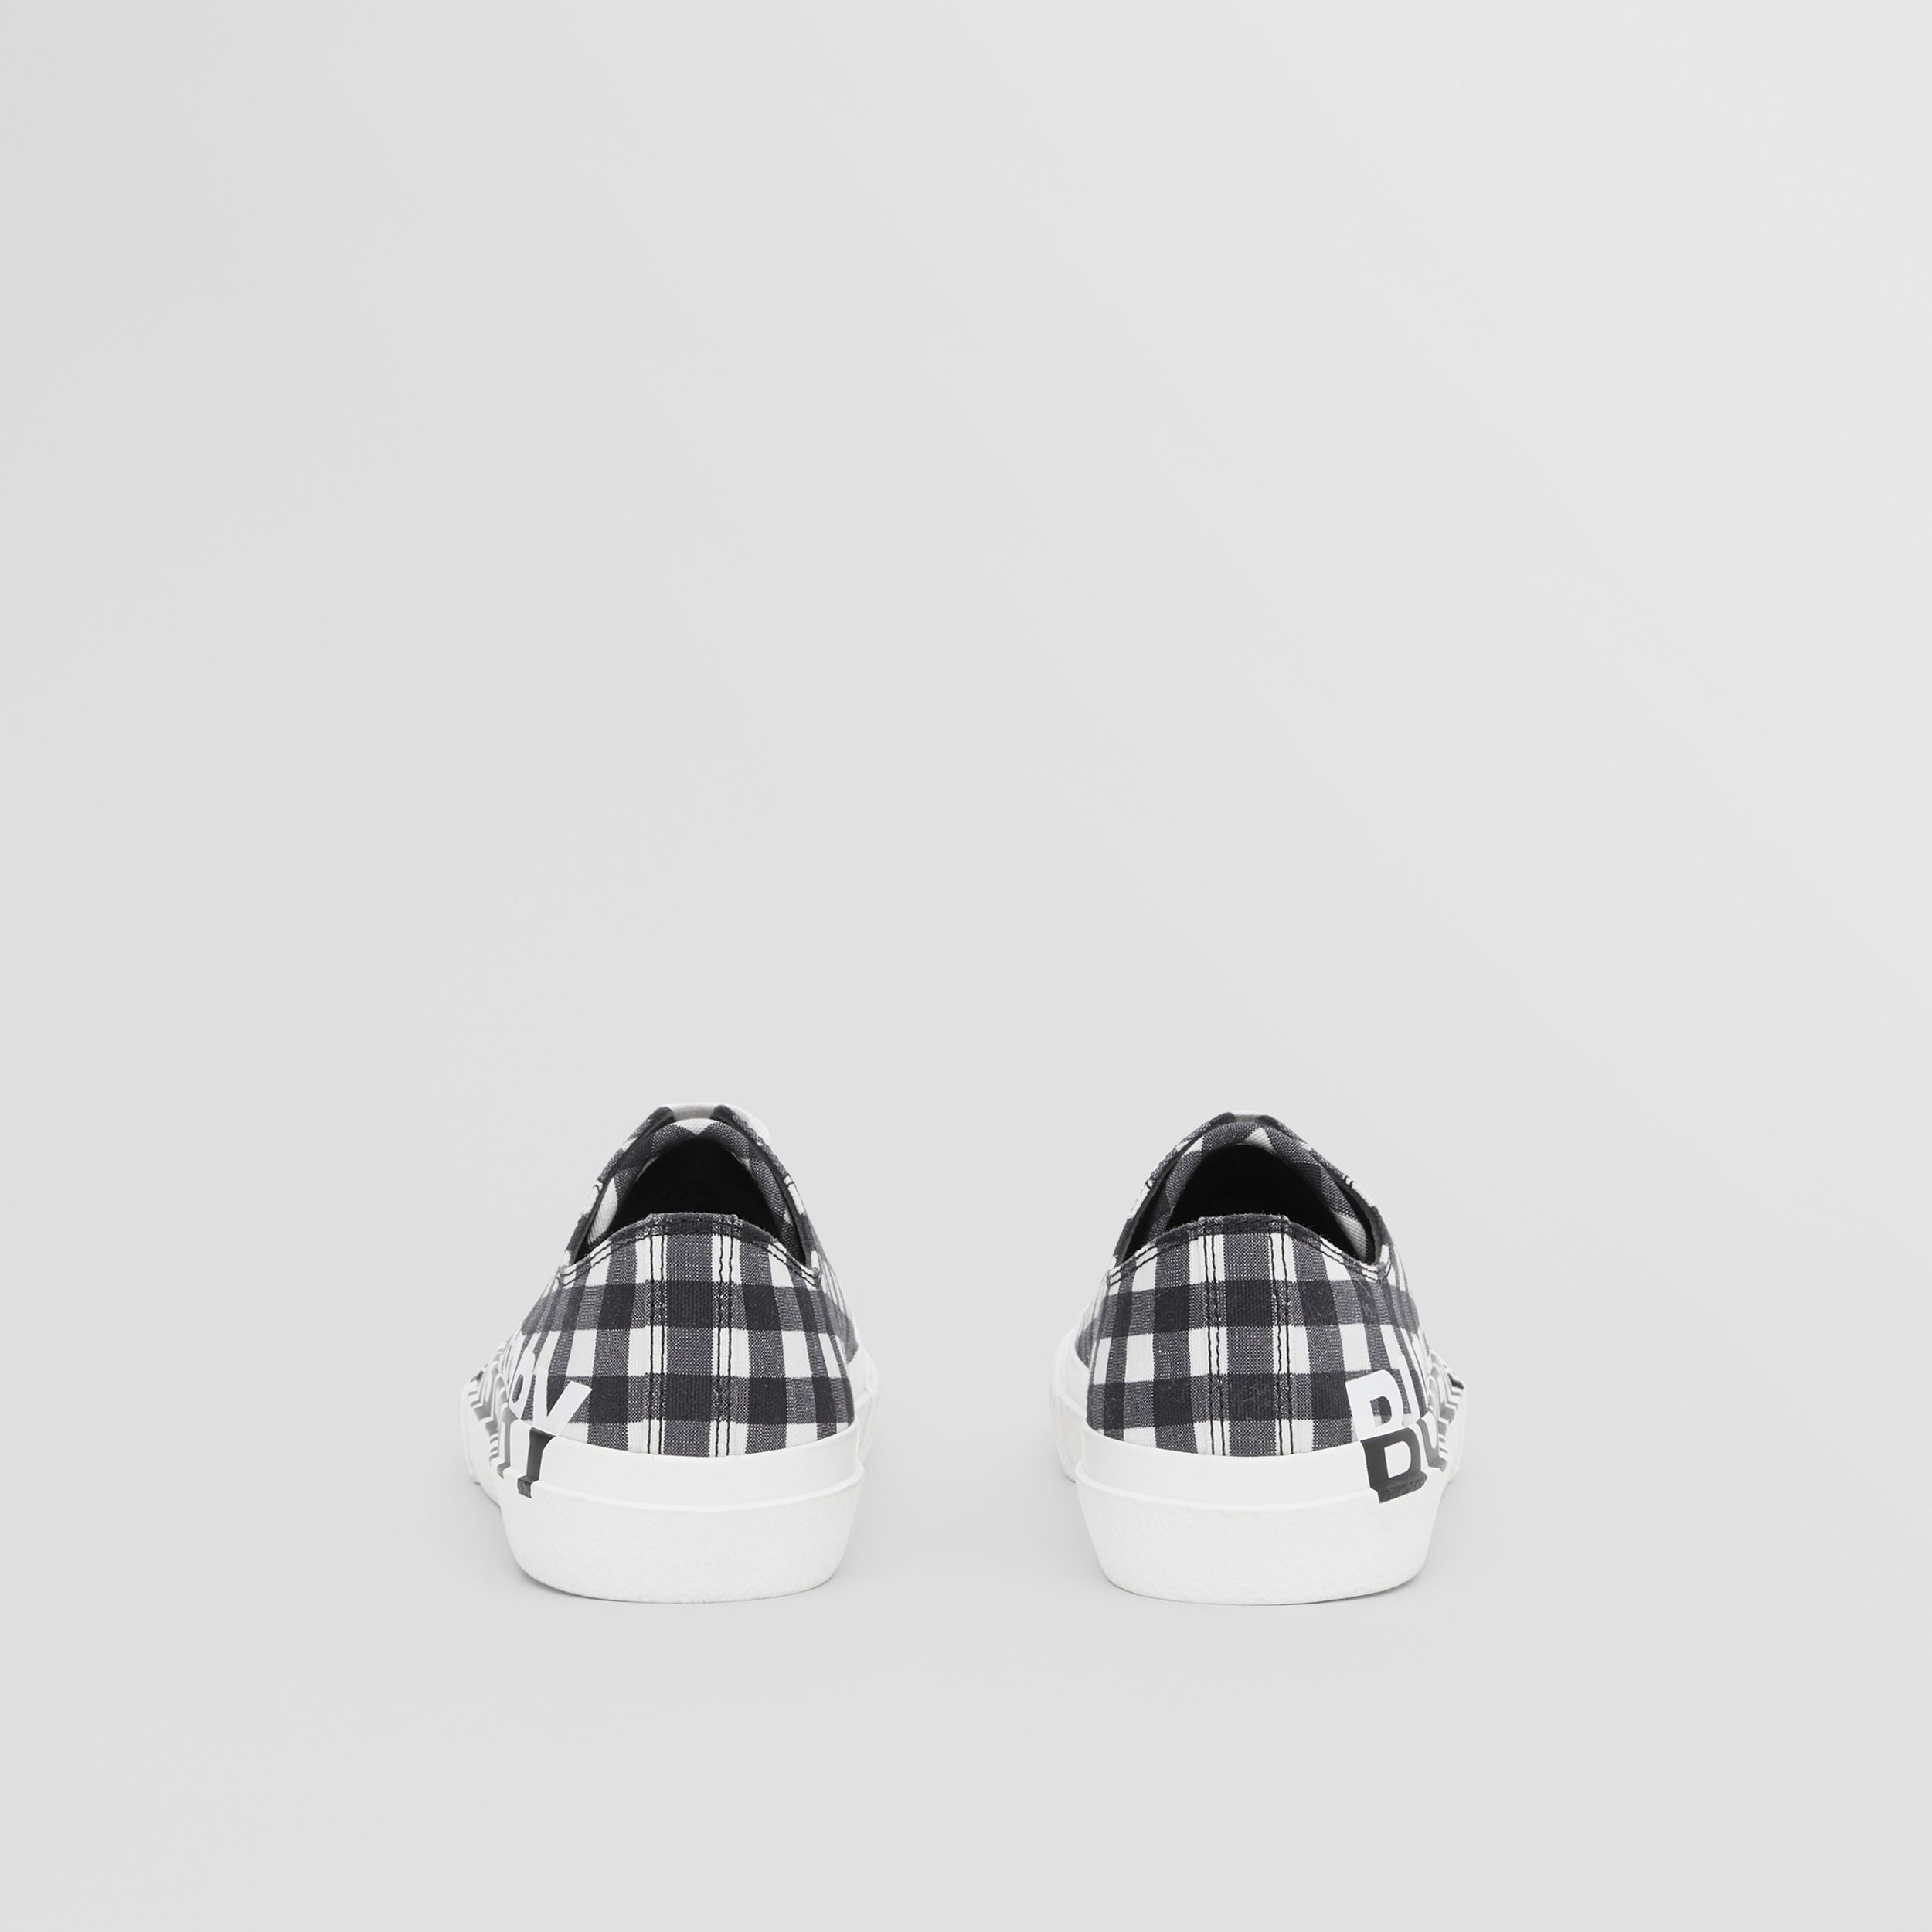 Logo Print Gingham Cotton Sneakers in Black/white - Women | Burberry Canada - 4